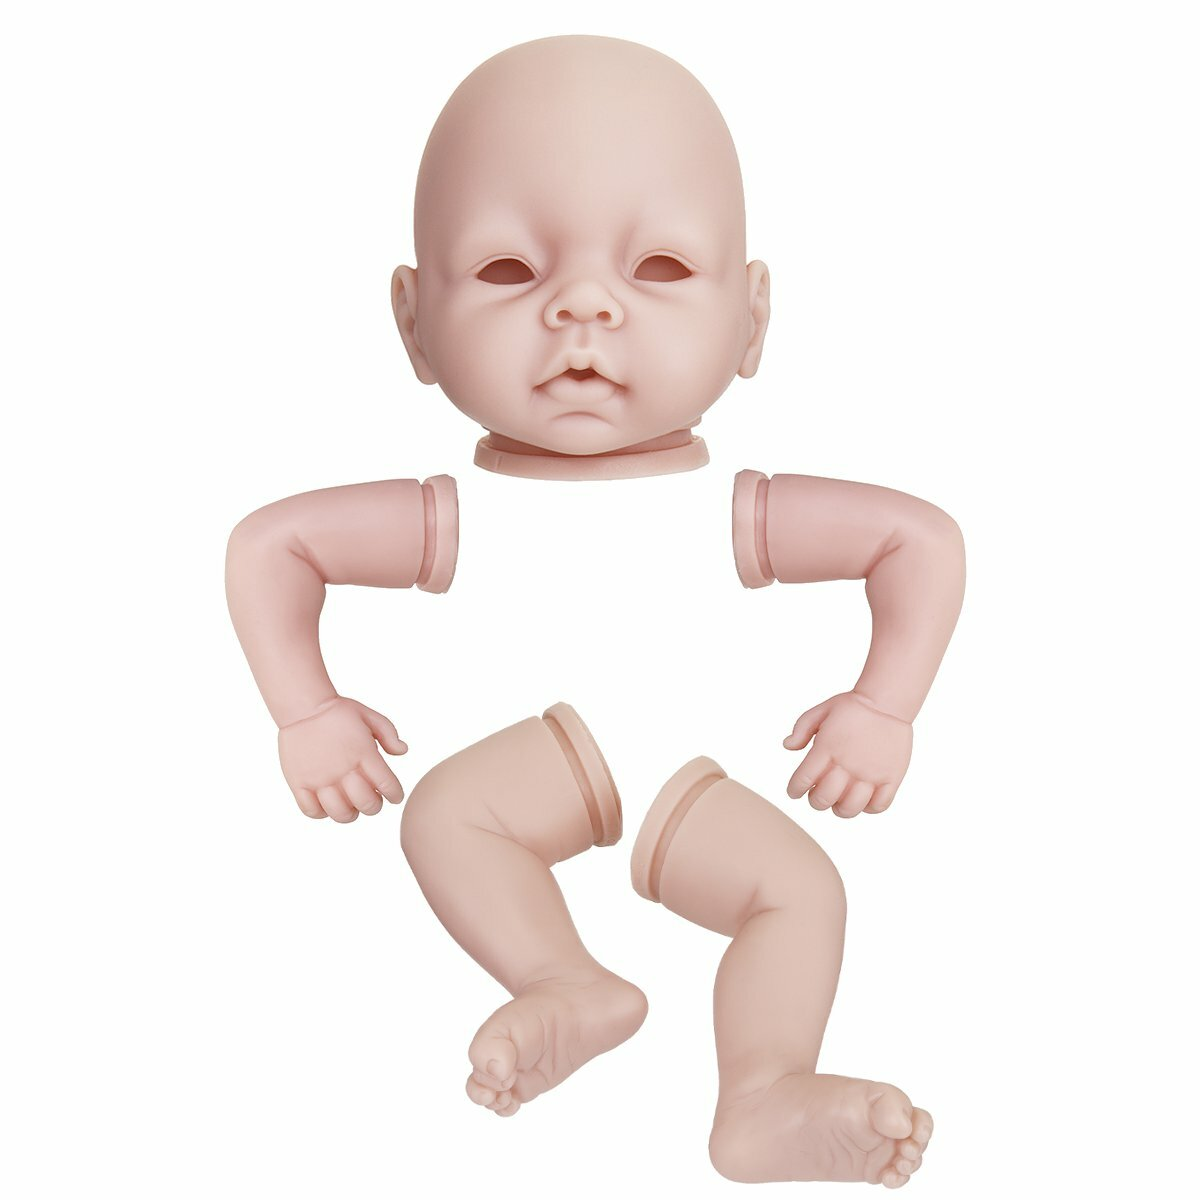 Silicone Vinyl DIY Reborn Baby Doll Accessories Lifelike Toddler Gifts No Body